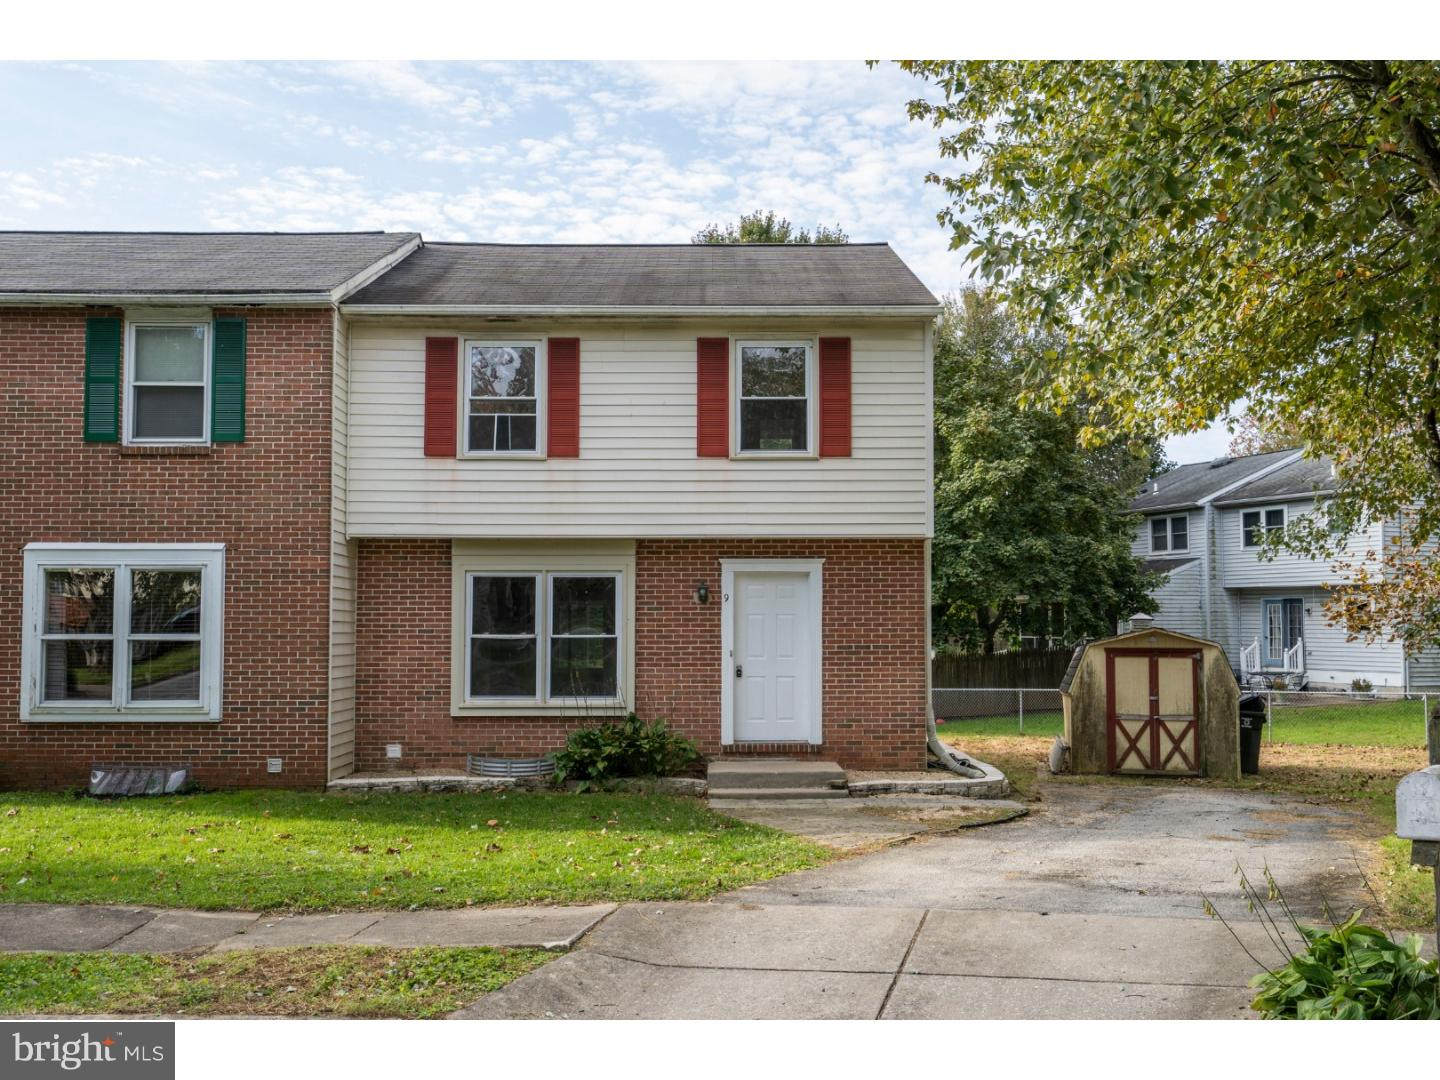 9 HARVEST DRIVE, THORNDALE, PA 19372